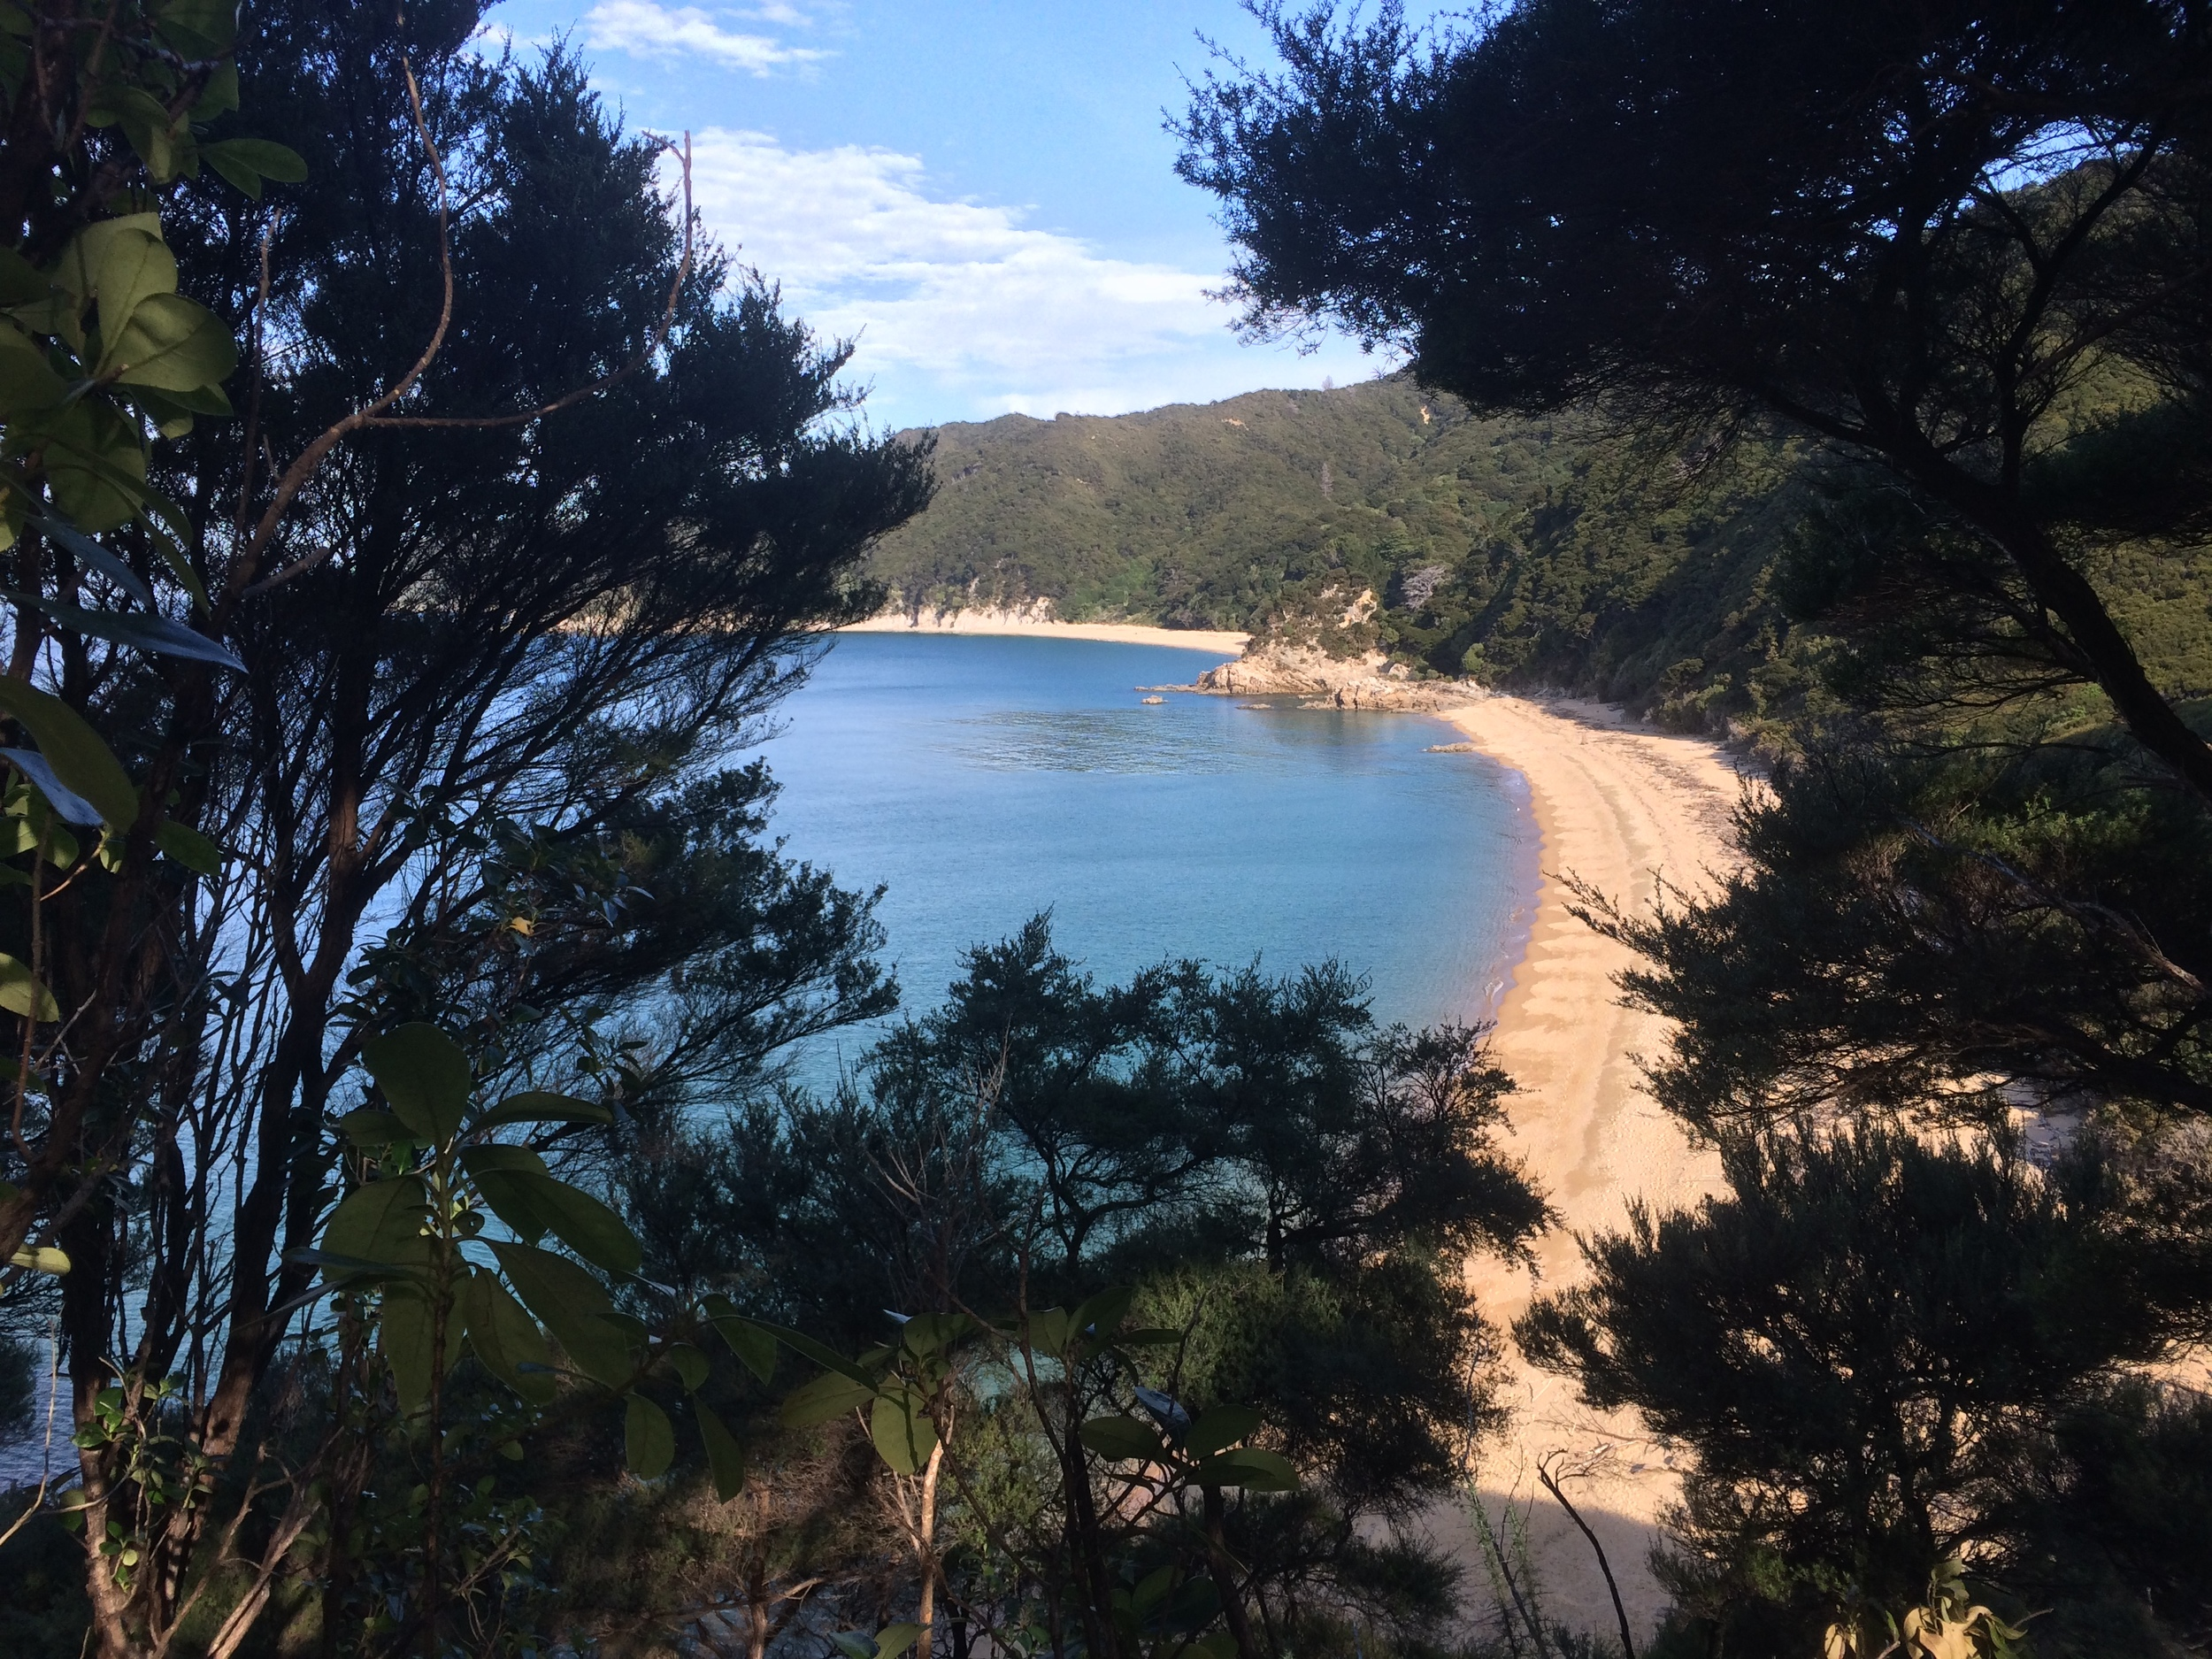 A sneak peak at a beach on the Abel Tasman walk